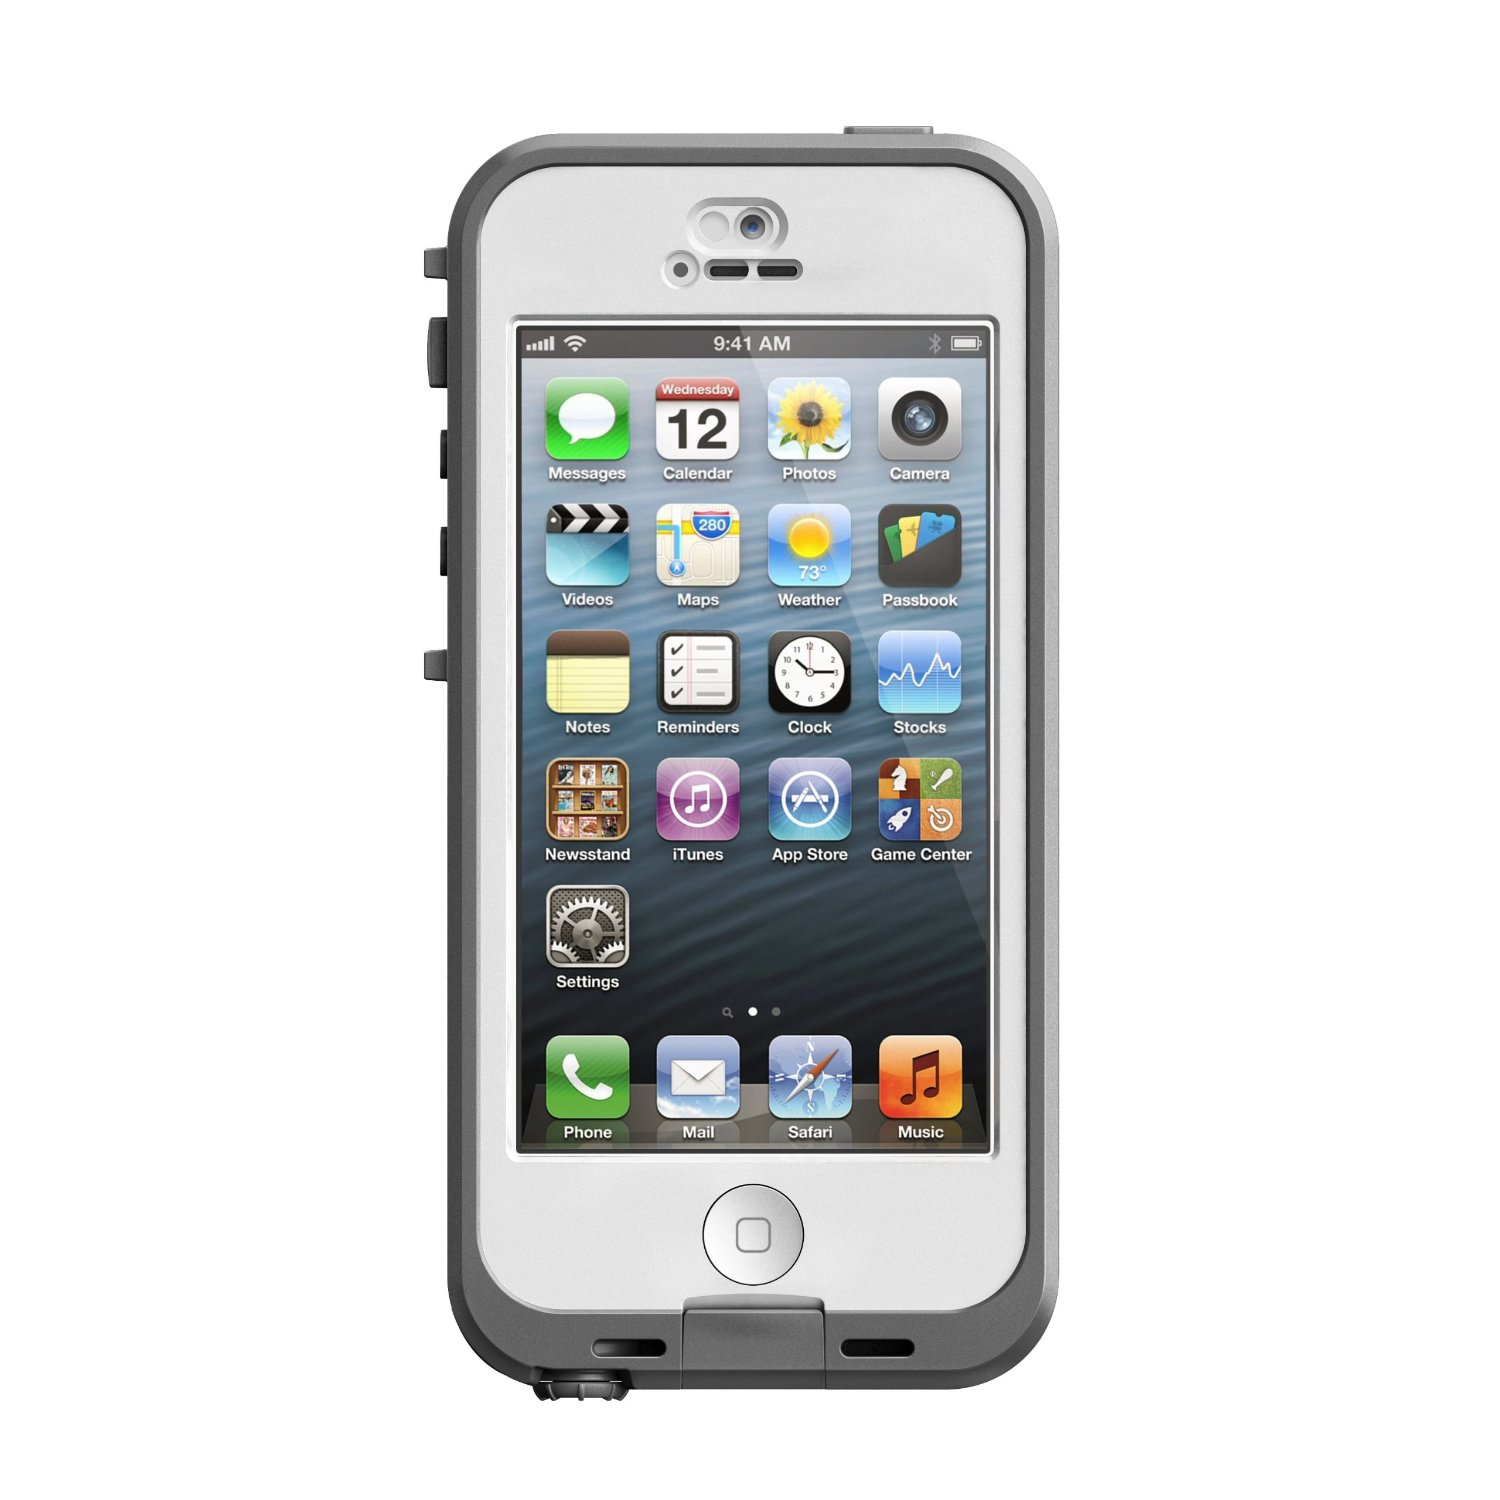 Otterbox 2106-02 mobile phone case